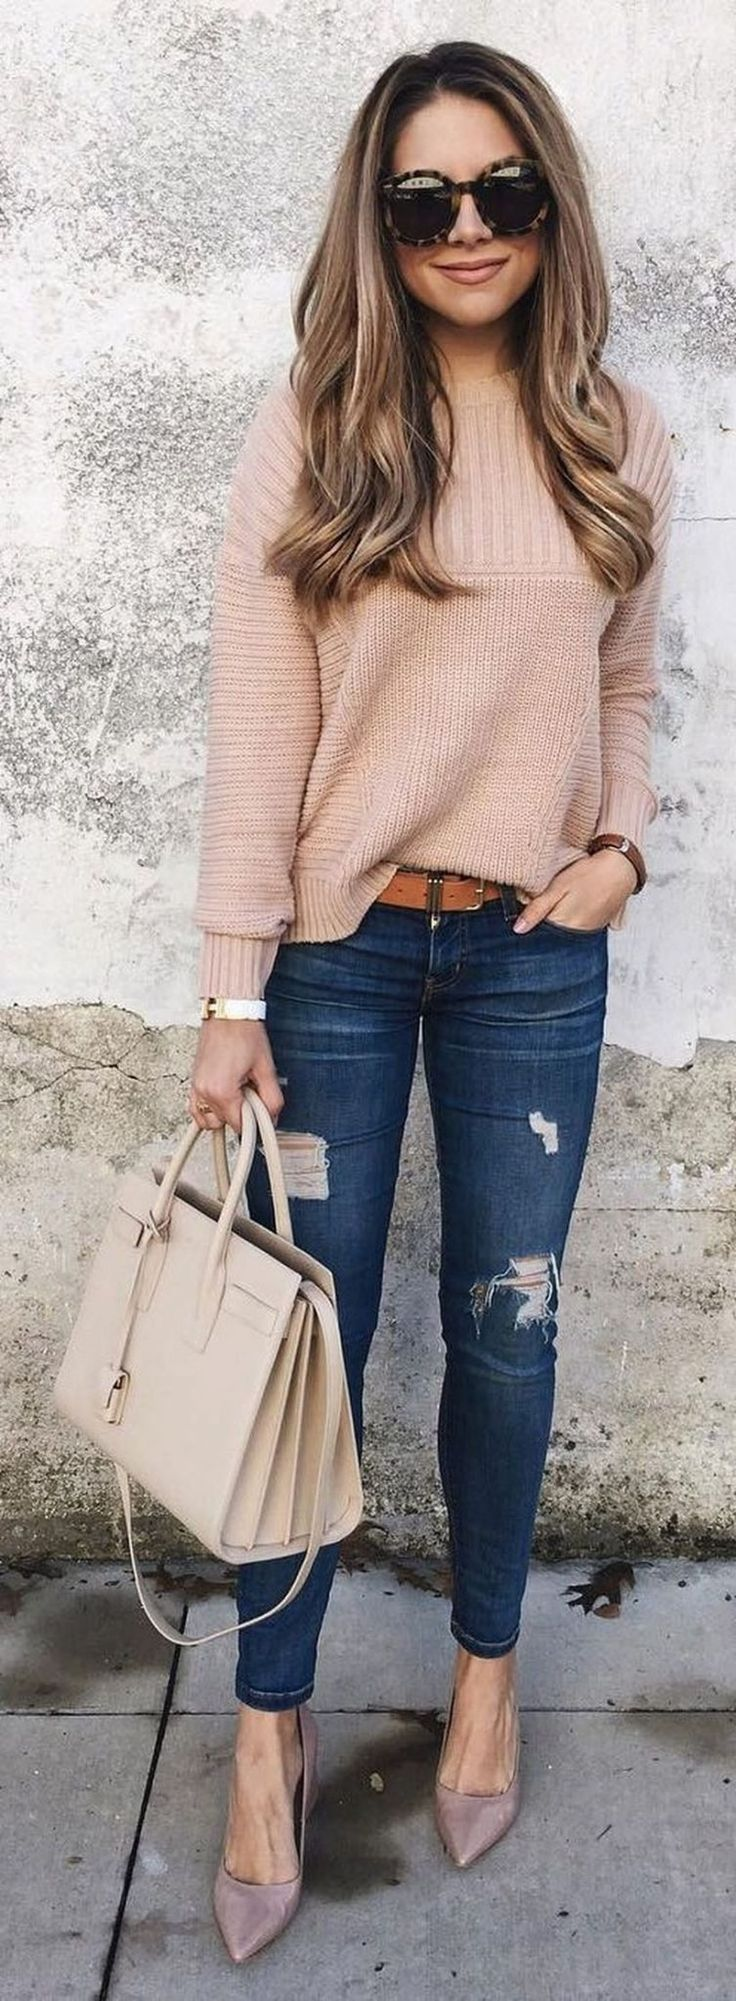 Awesome 43 Stylish And Chic Winter Outfit Ideas For Your Inspiration. More at http://aksahinjewelry.com/2017/12/23/43-stylish-chic-winter-outfit-ideas-inspiration/ #winterfashion2017casual #winteroutfits